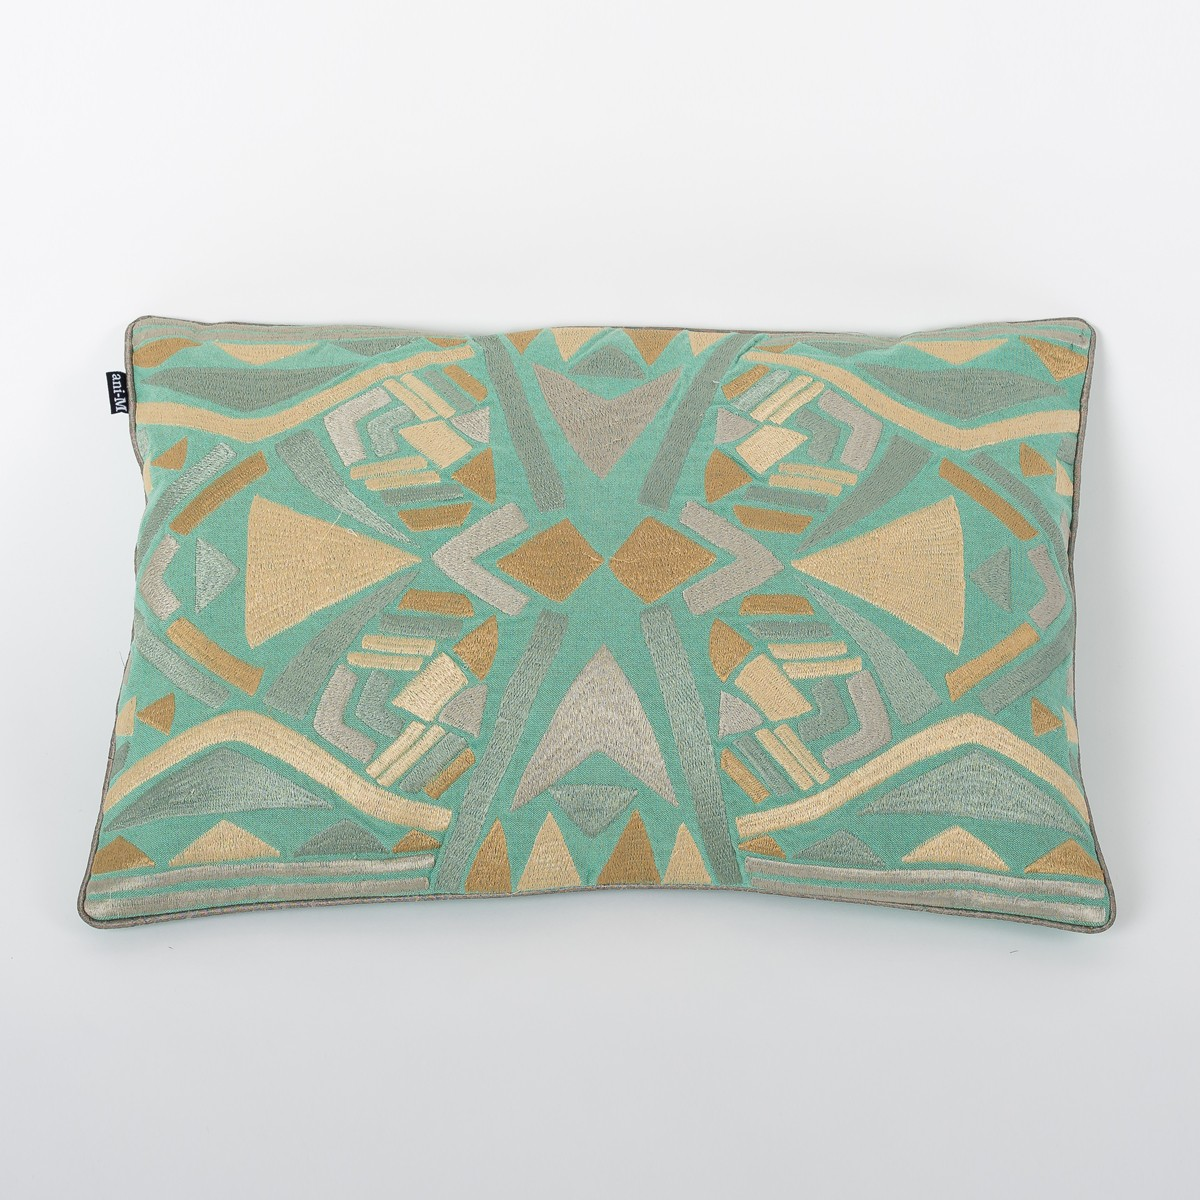 Teal Cotton Cushion Cover with Thread Embroidery Front